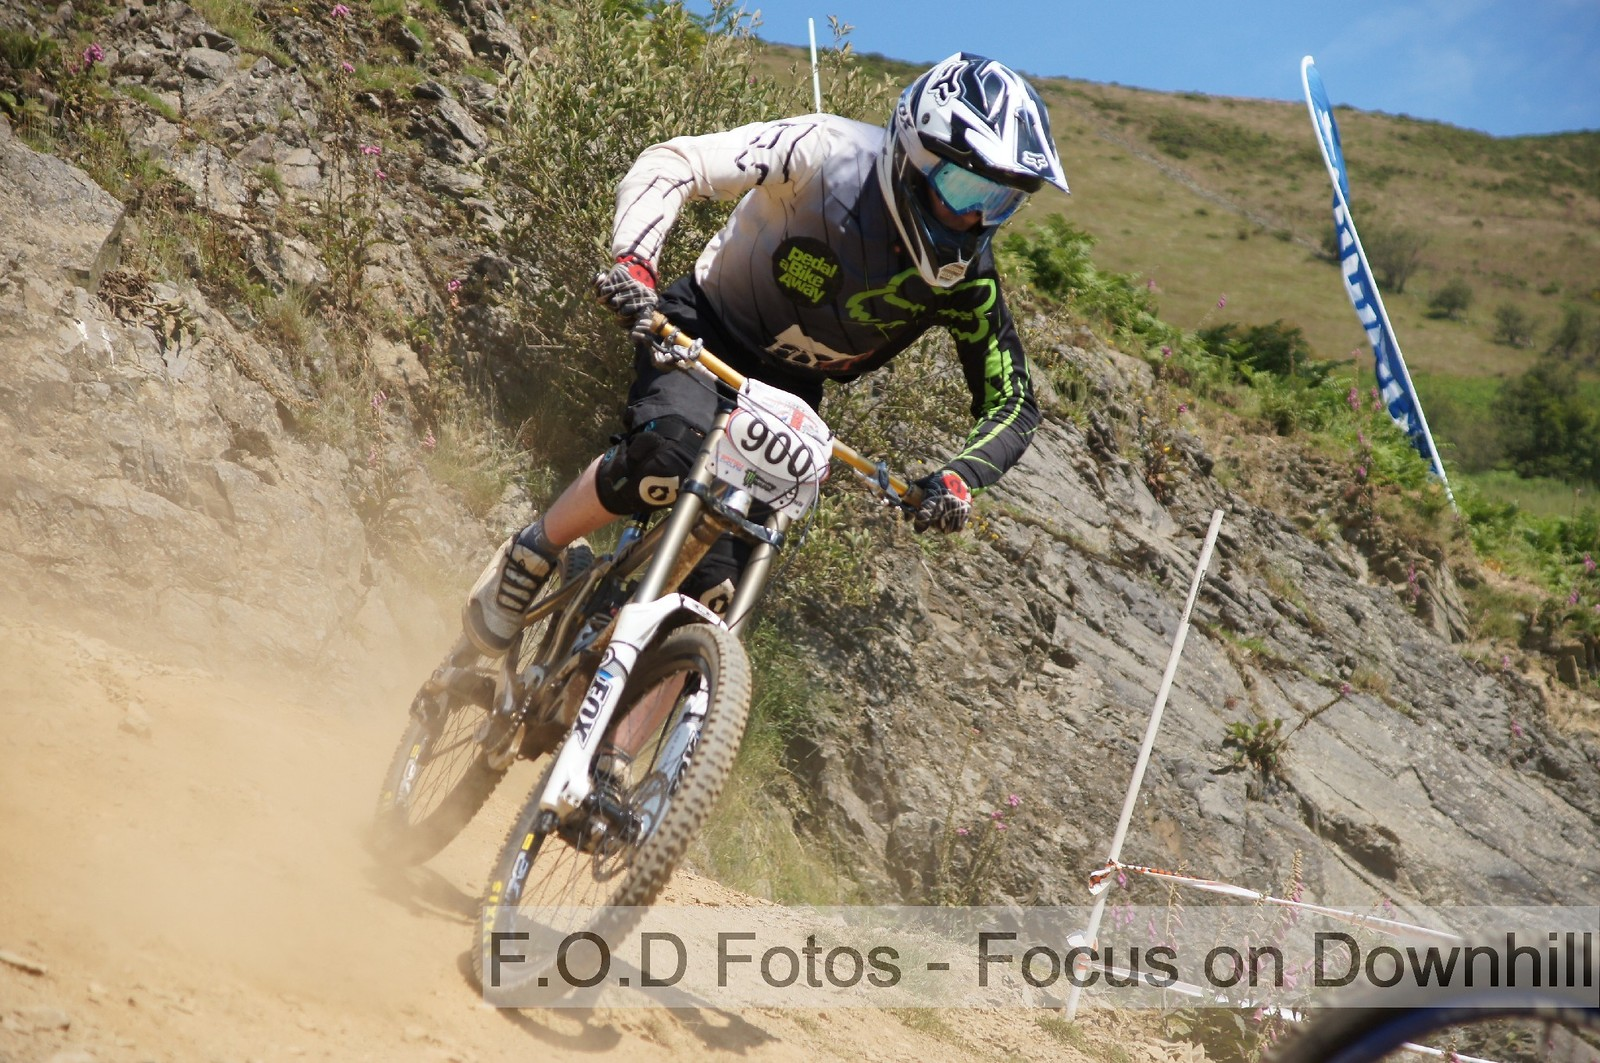 Charlie Hatton national Champs 2012 - Fodfotos - Mountain Biking Pictures - Vital MTB